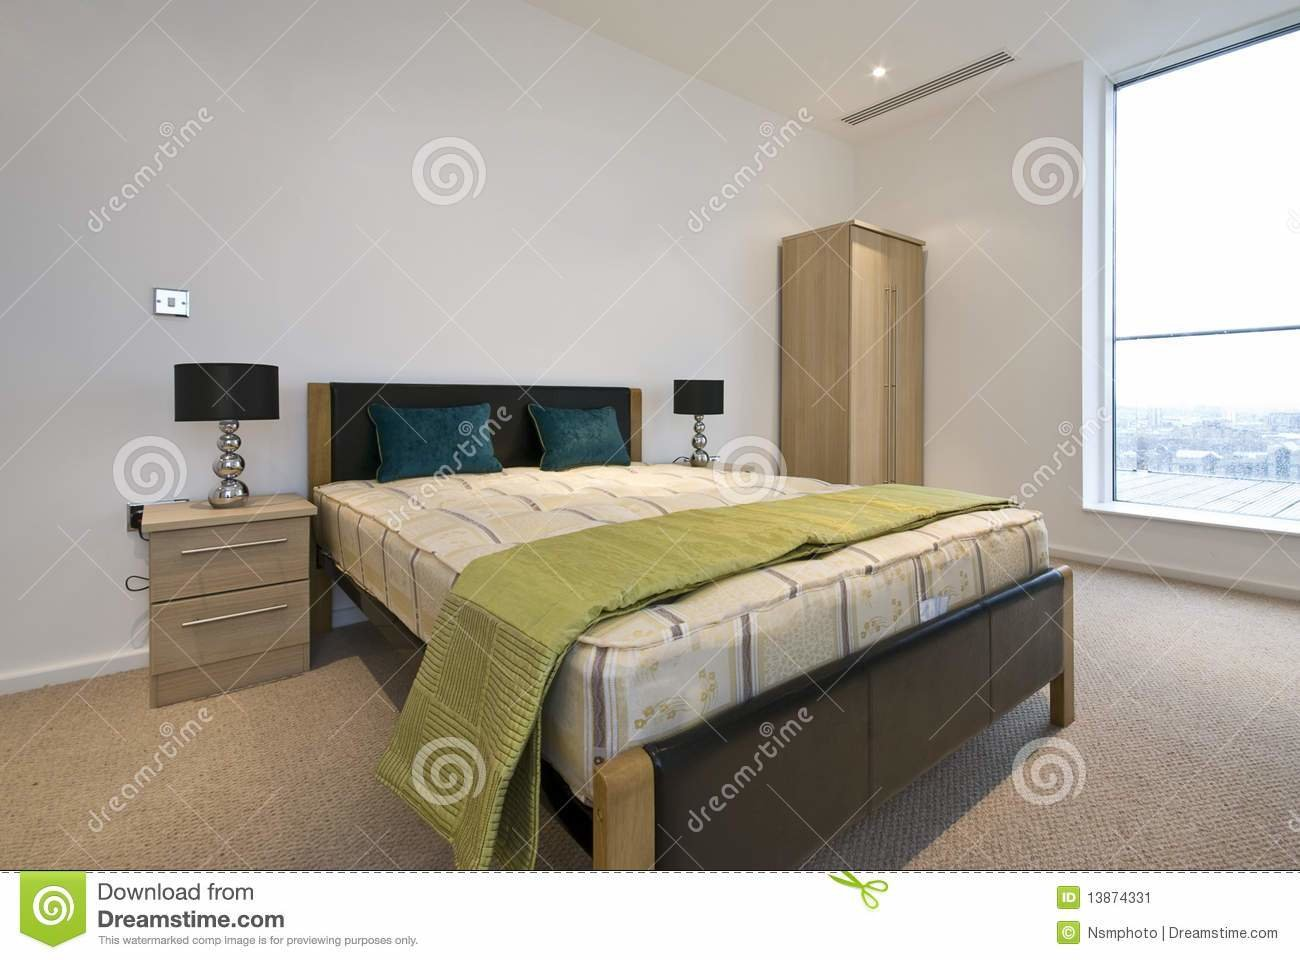 Best Modern Double Bedroom With King Size Bed Stock Image Image Of Built King 13874331 With Pictures